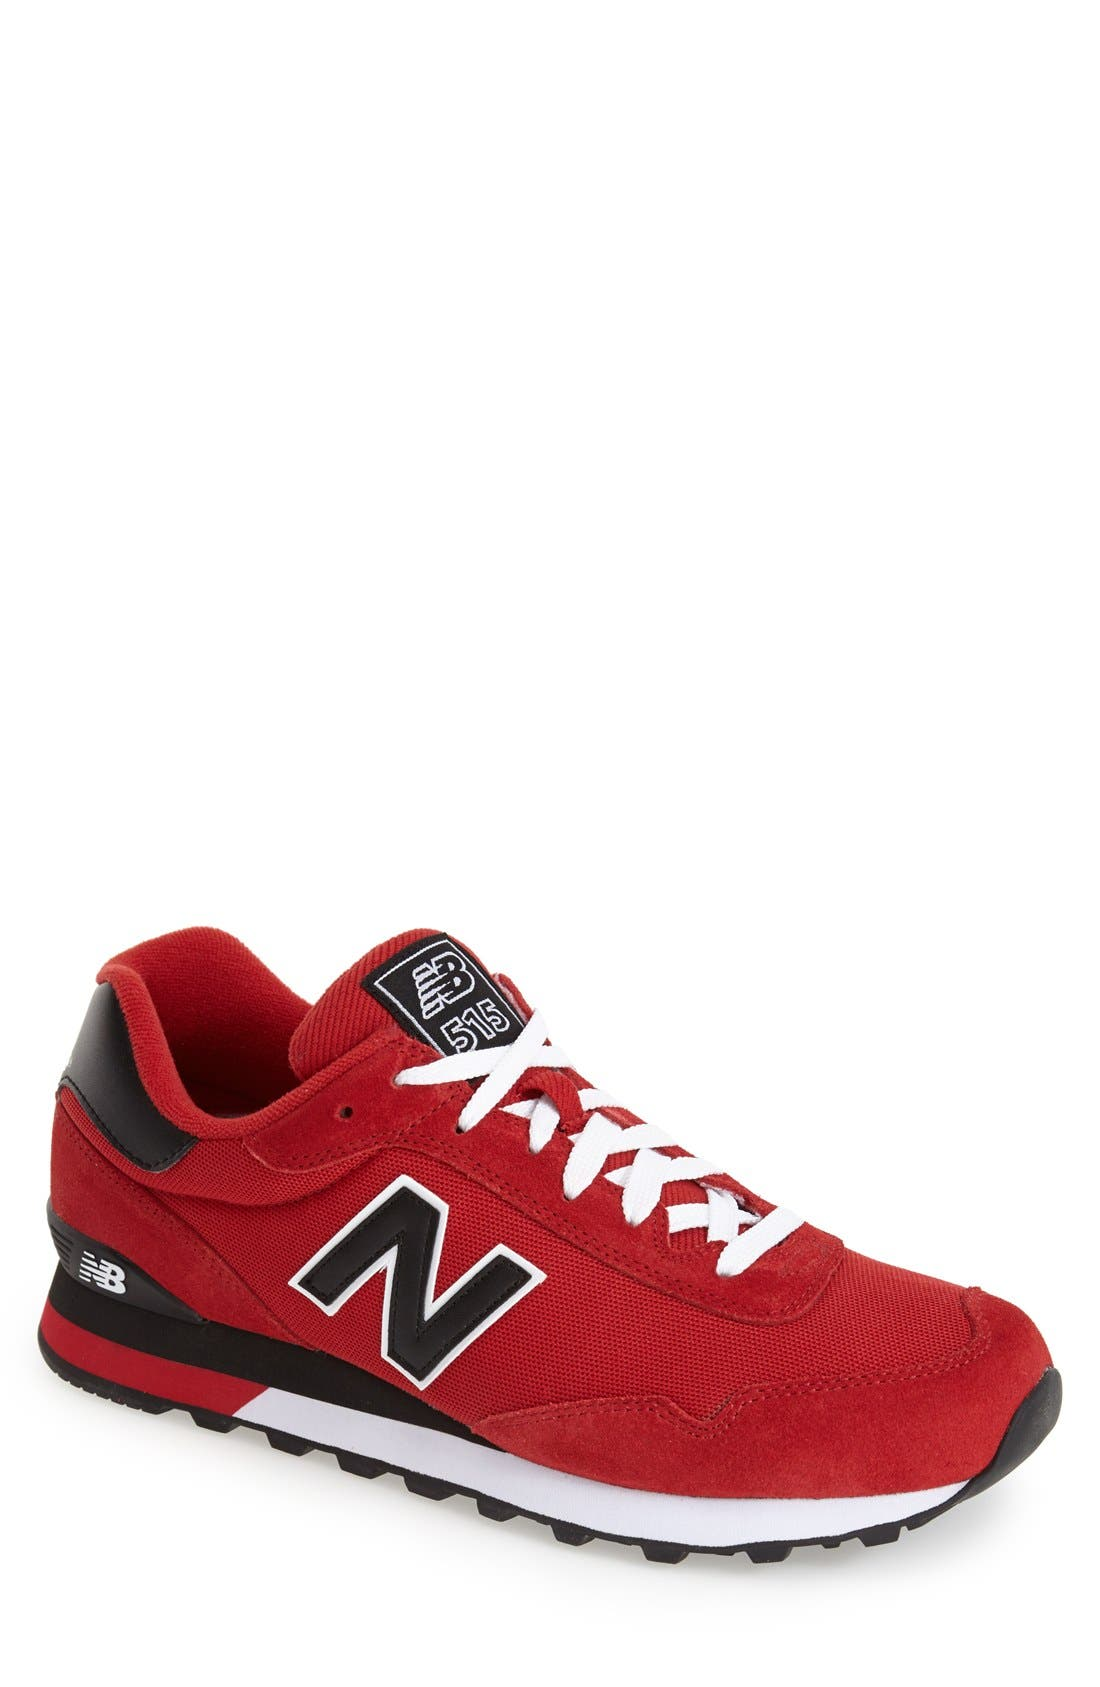 Main Image - New Balance 'Piqué Polo Collection - 515' Sneaker (Men)